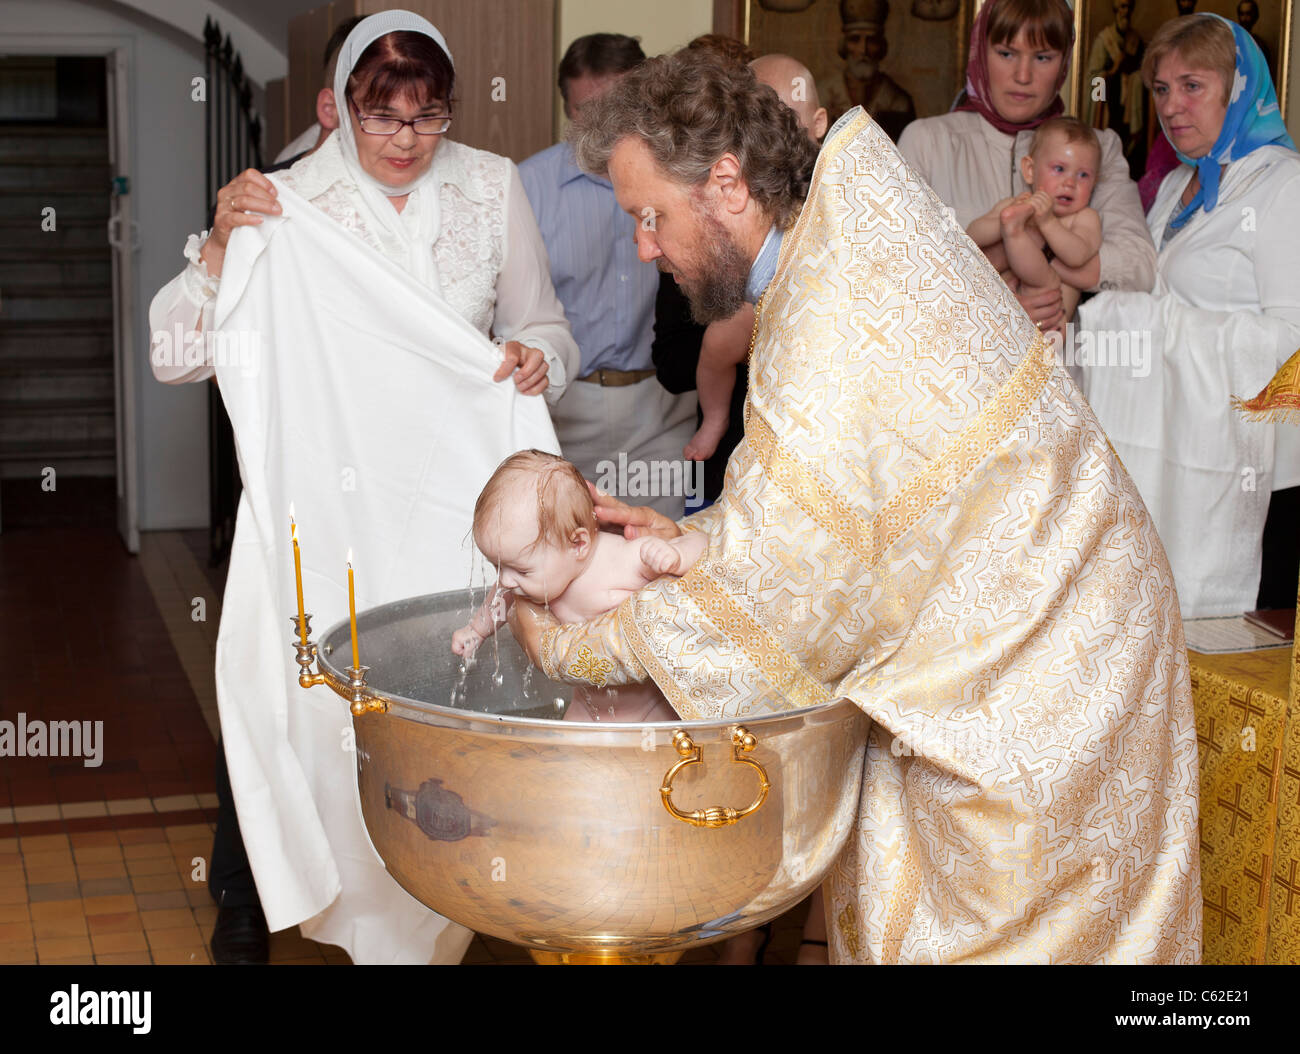 How many times did Russia actually baptize